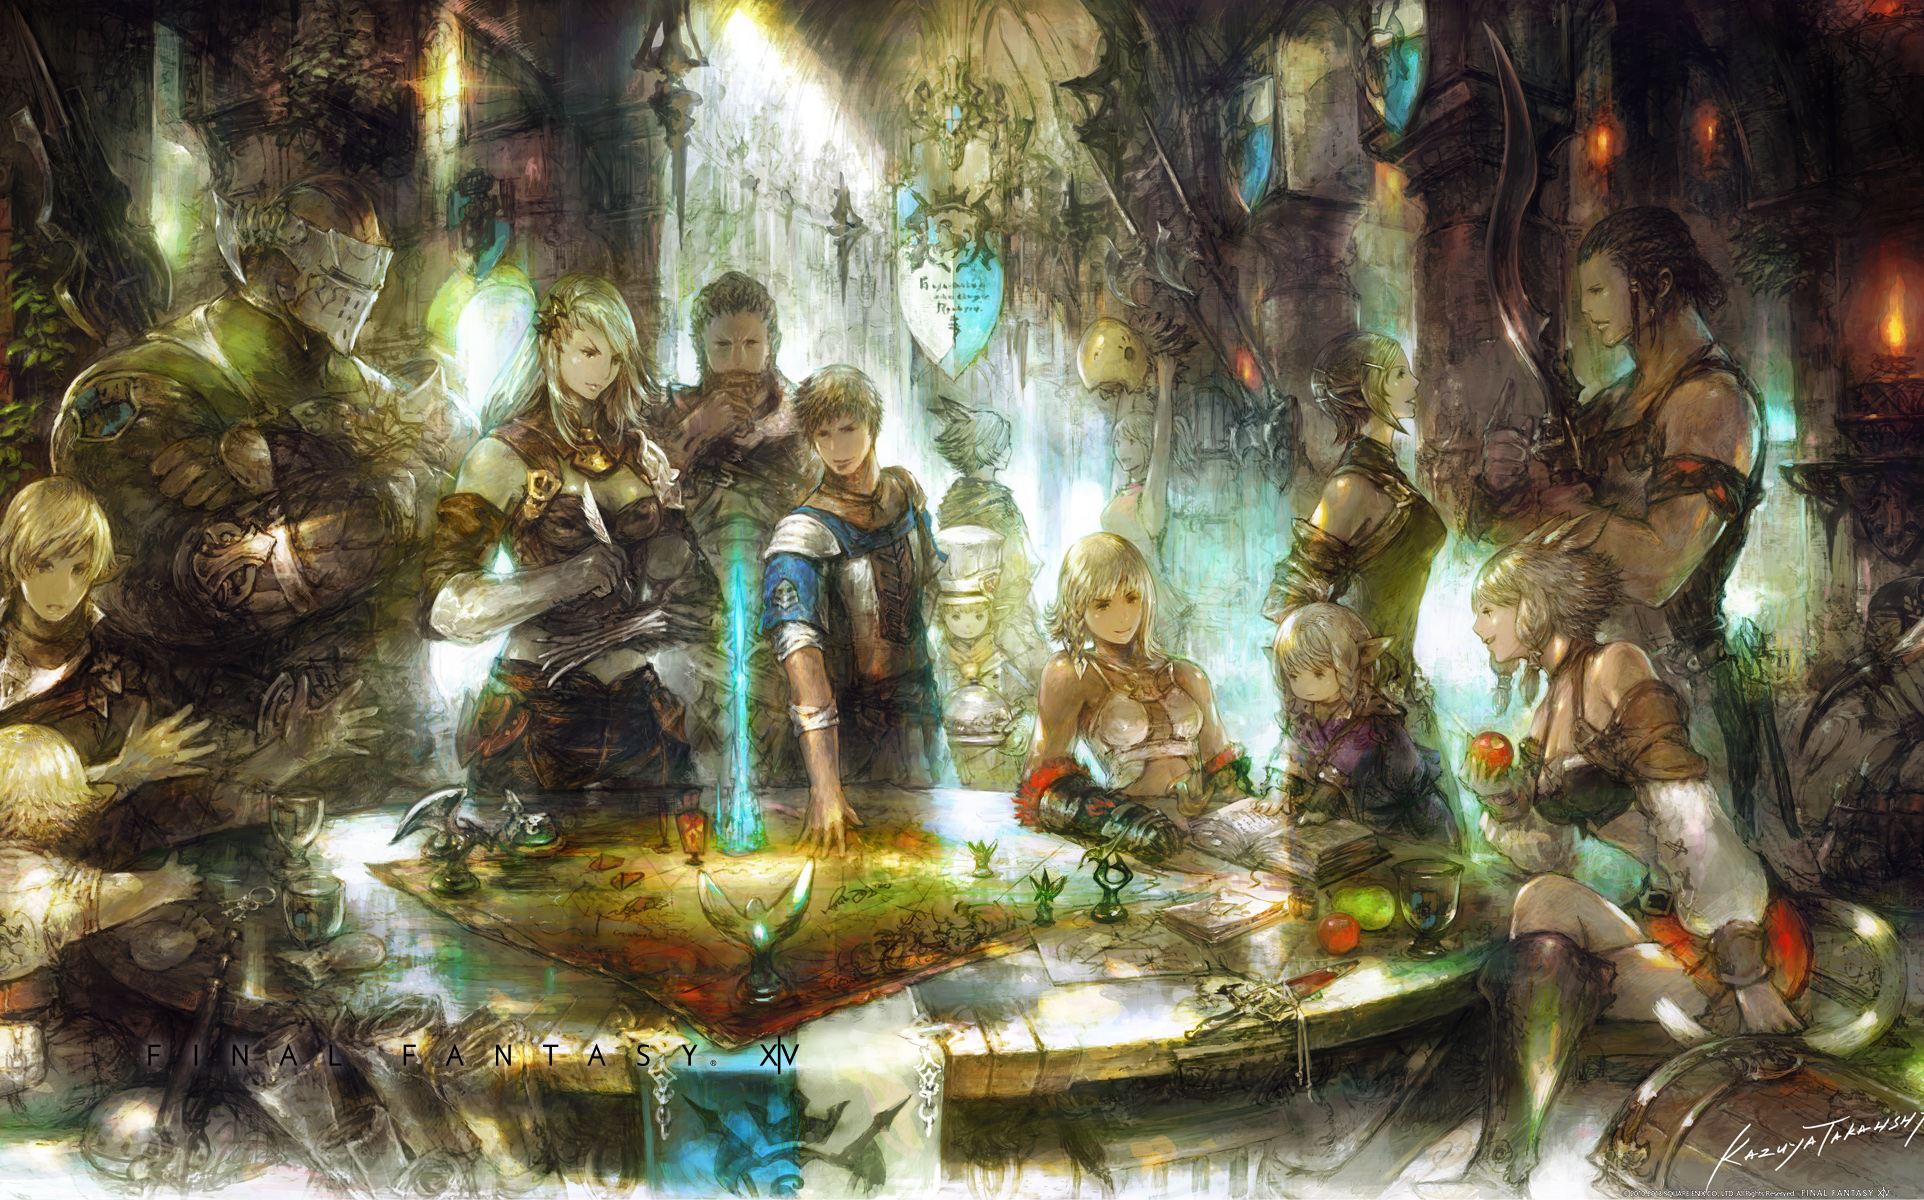 Free Download Final Fantasy Xiv Wallpapers 1924x1200 For Your